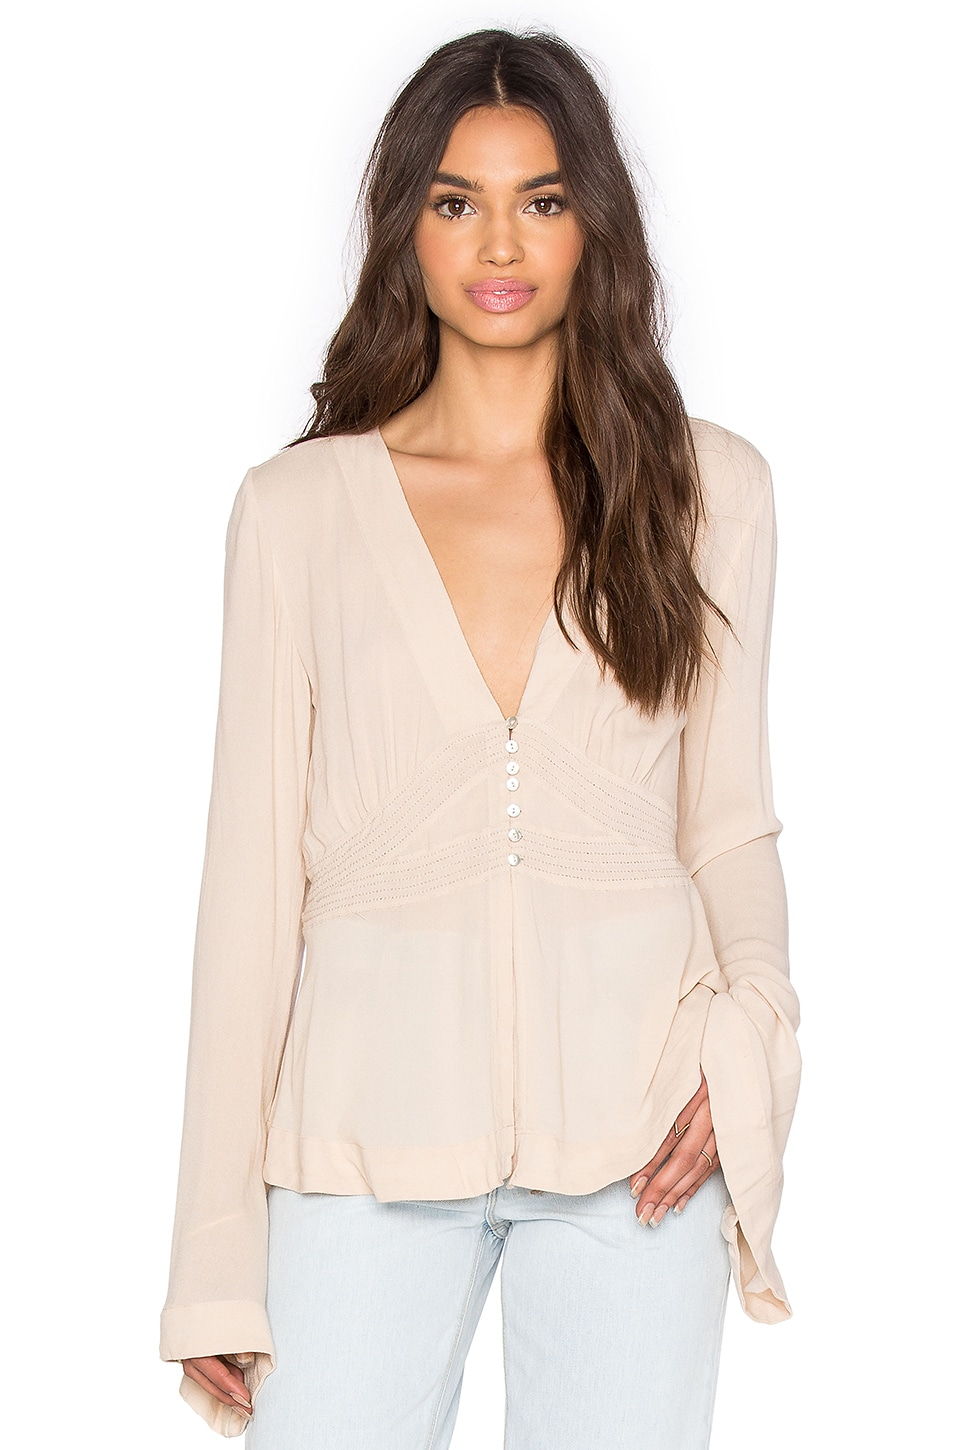 Free People Boho Sleeve Blouse in Pearl